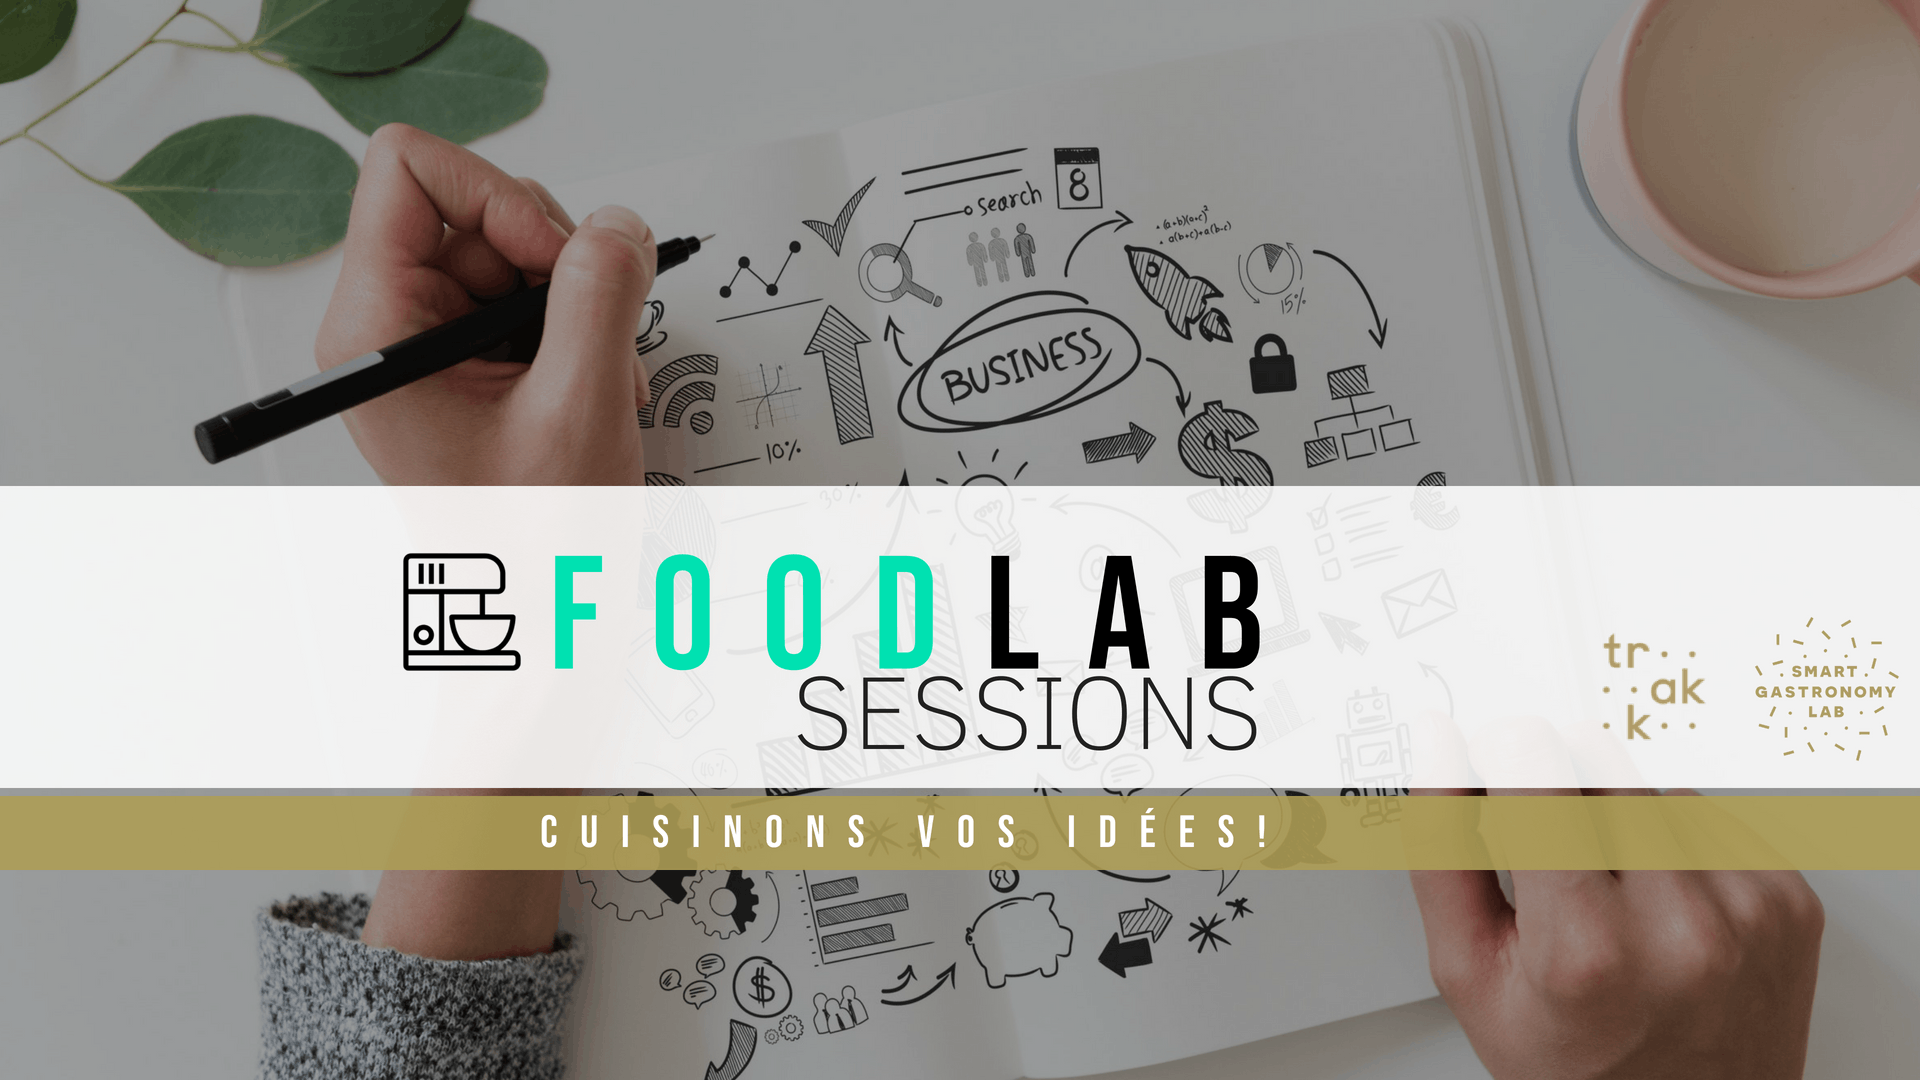 FoodLab Sessions: cuisinons vos idées!